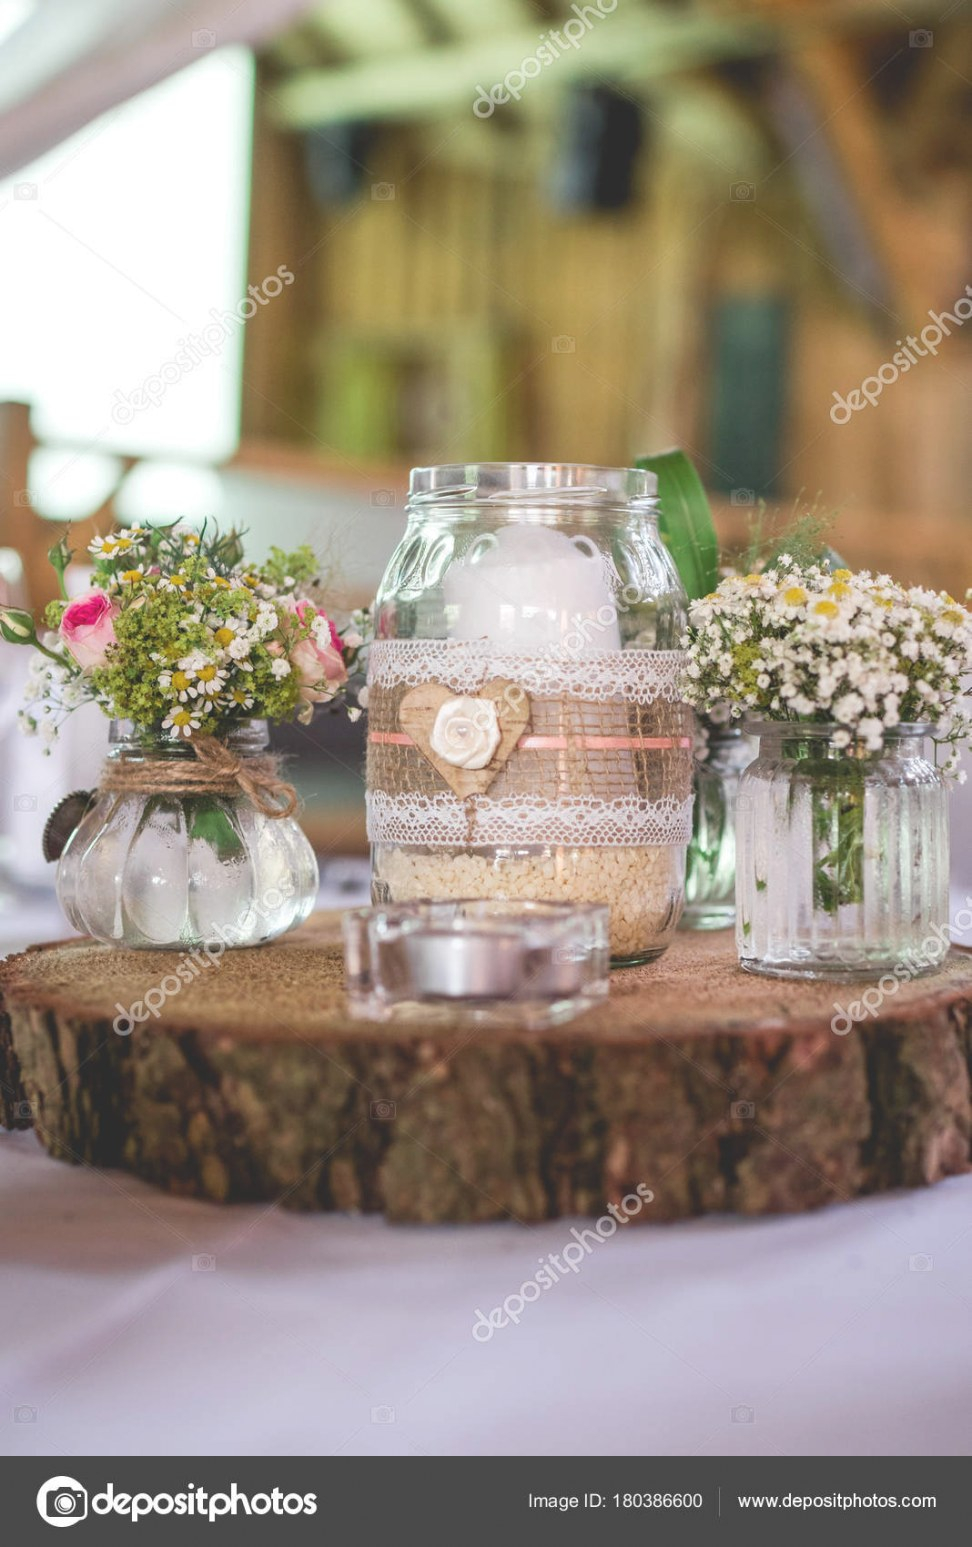 Romantic Wedding Decoration With Flowers And Candle On A Wooden Plate  180386600 within Candle Decoration With Flowers